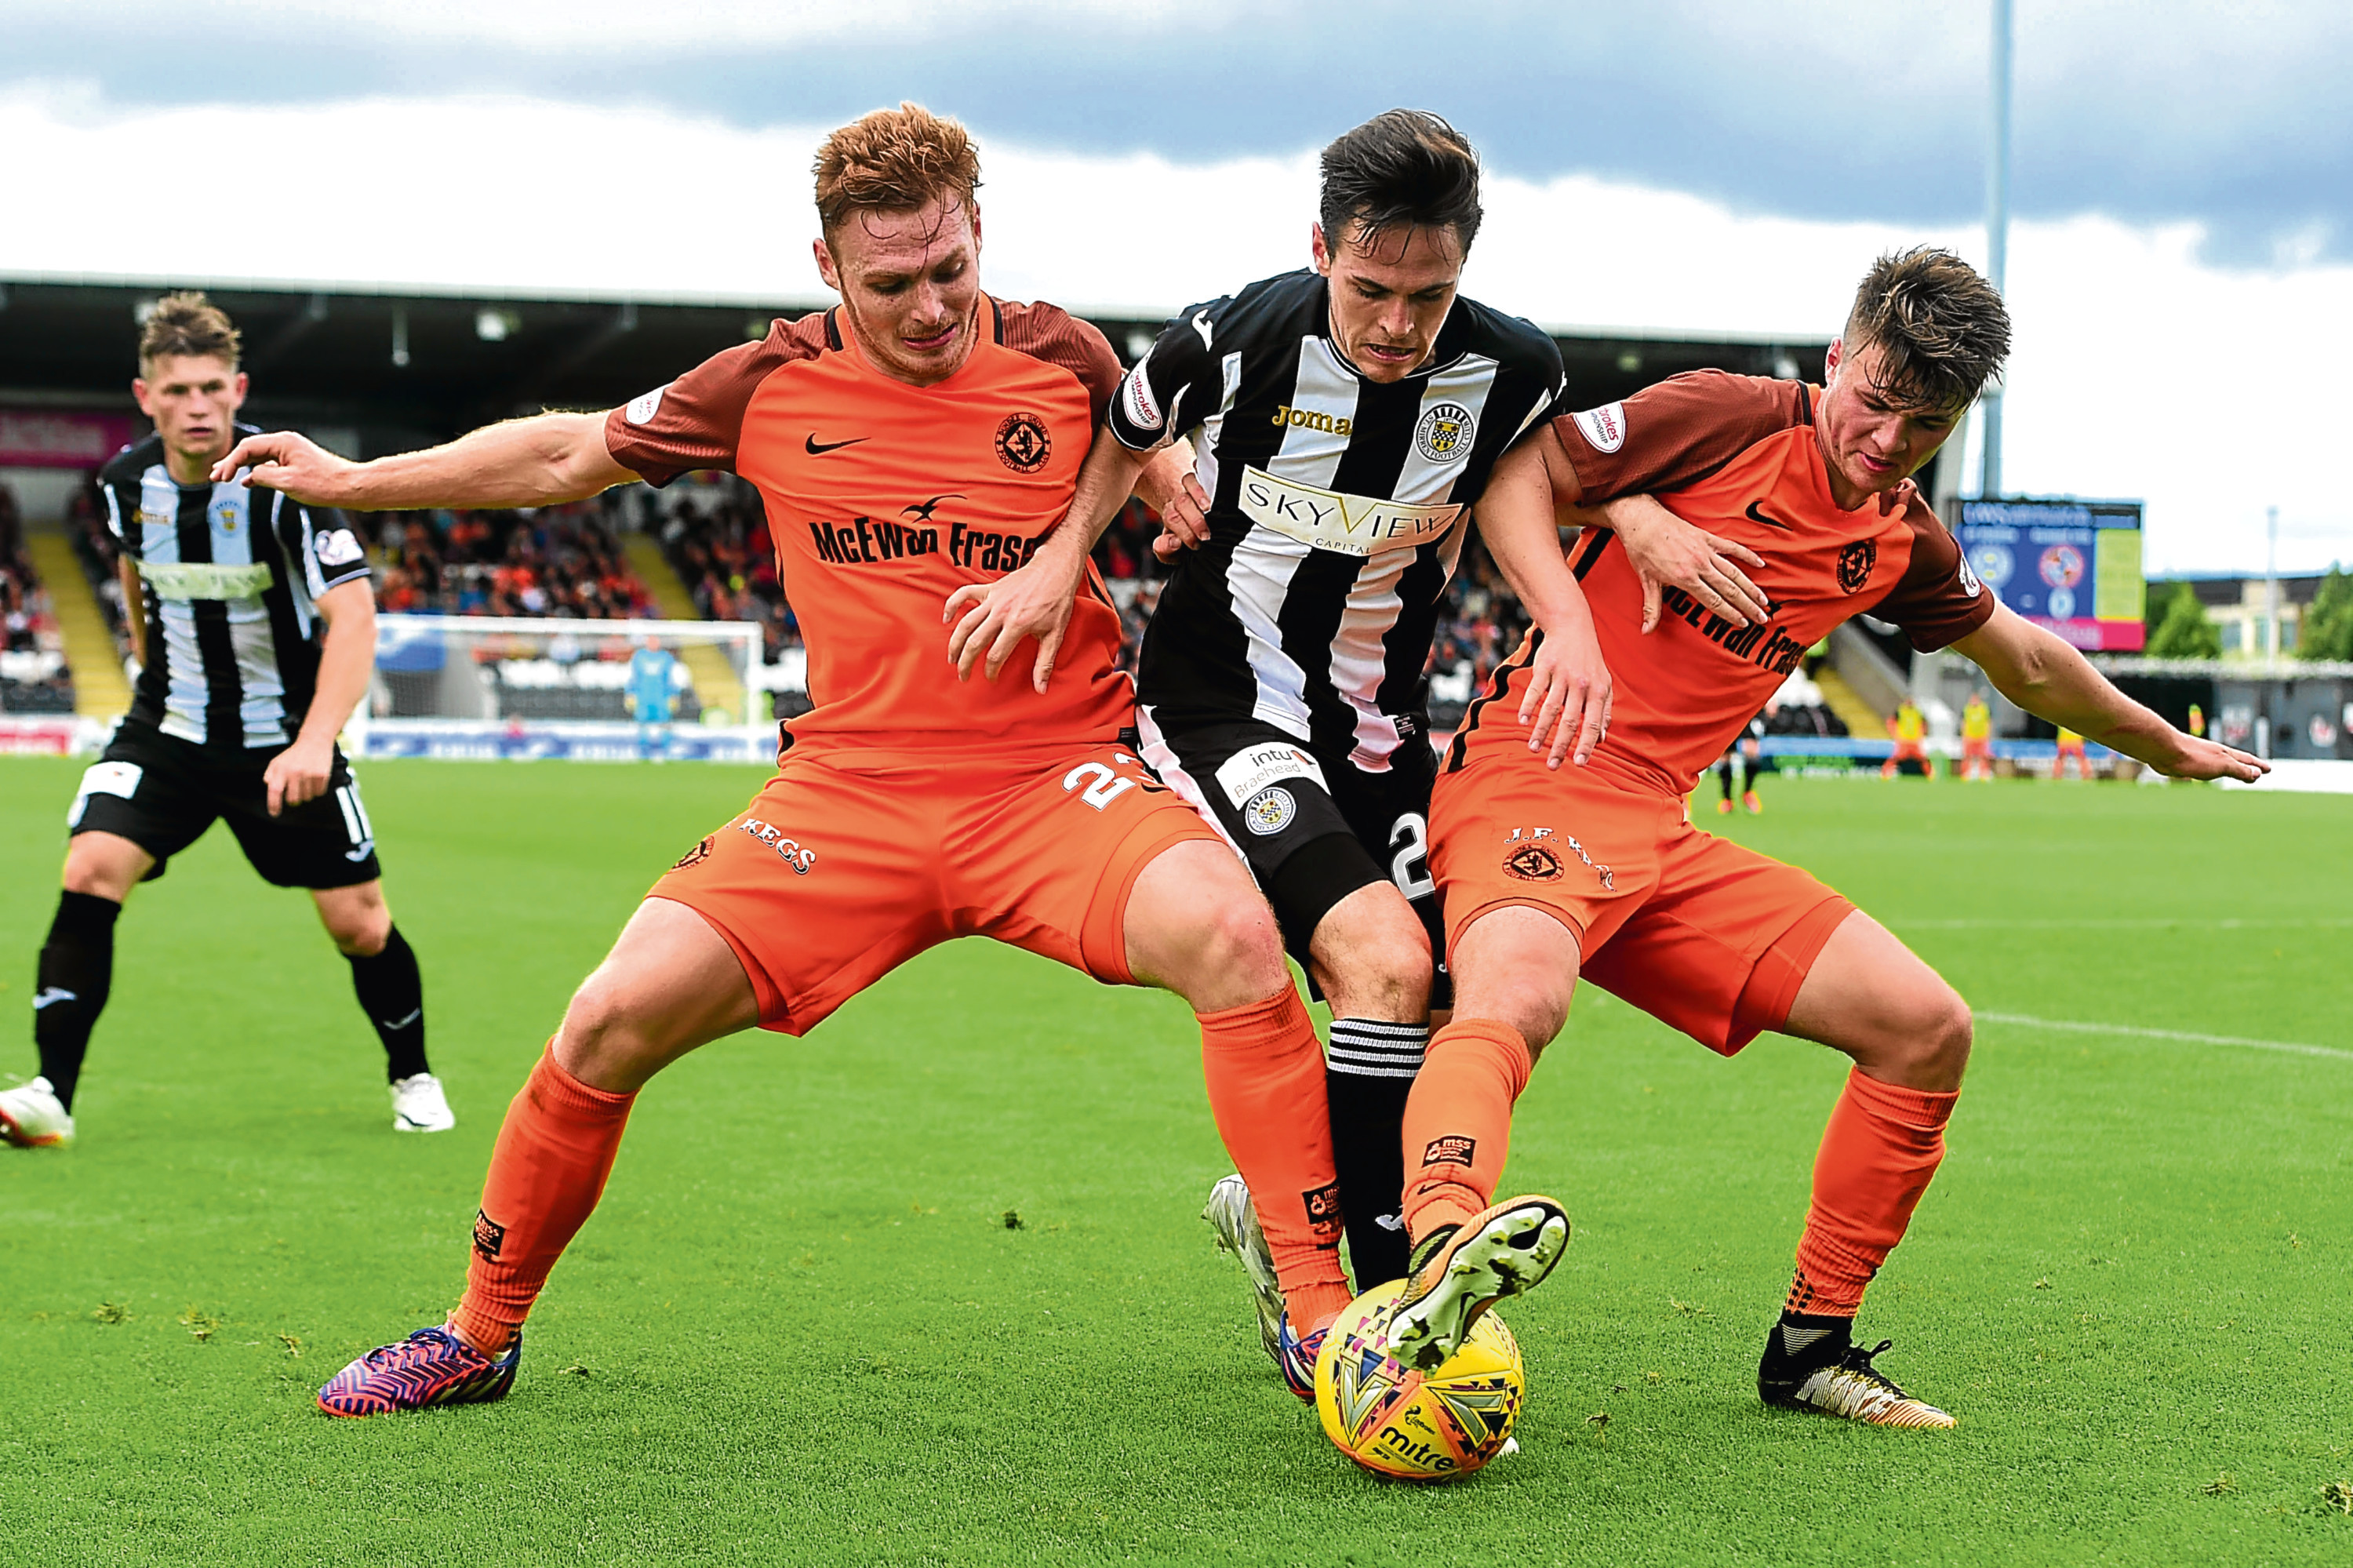 Jamie Robson (right) and Fraser Fyvie battle for the ball during Dundee United's 3-0 away defeat to St Mirren at the start of the season. The Tangerines are confident of victory on Friday evening.